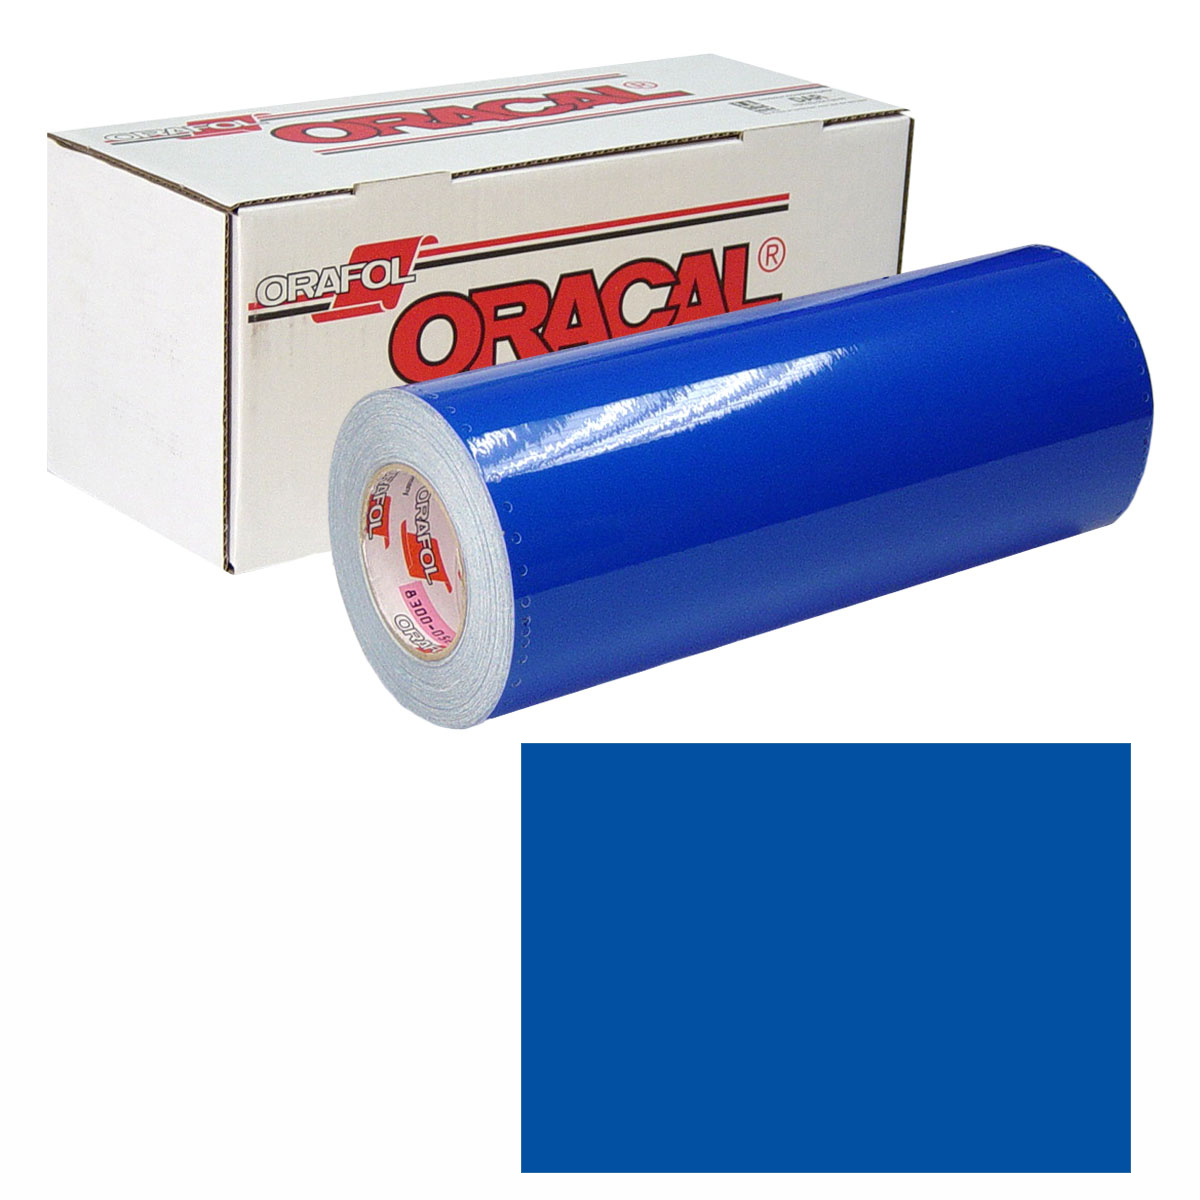 ORACAL 631 Unp 30in X 10yd 098 Gentian